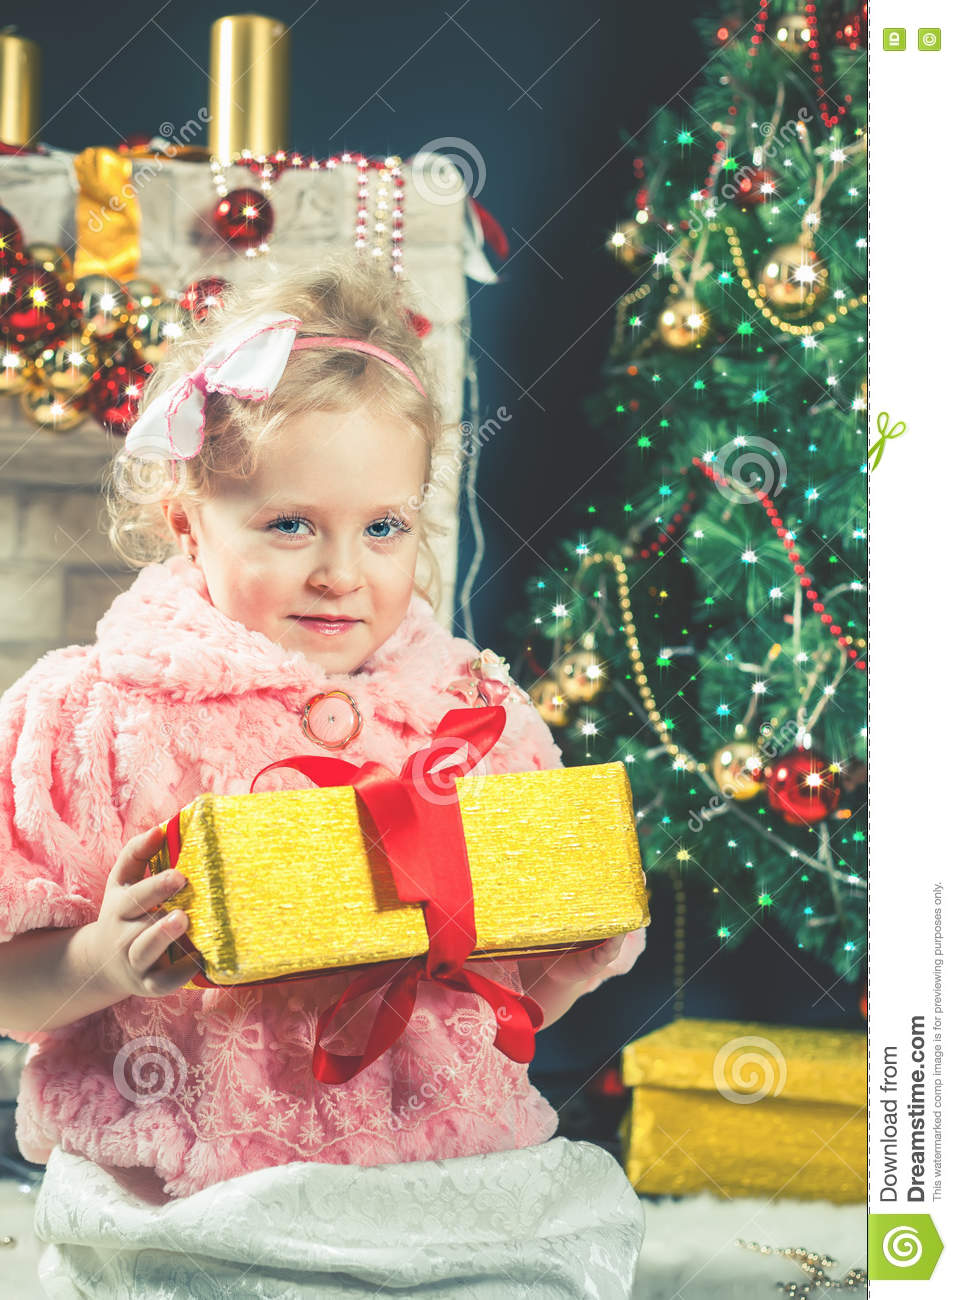 closeup image of happy little girl receive a gift near decorating christmas tree new year 2017 fairy tale dressed in fashion fur coat